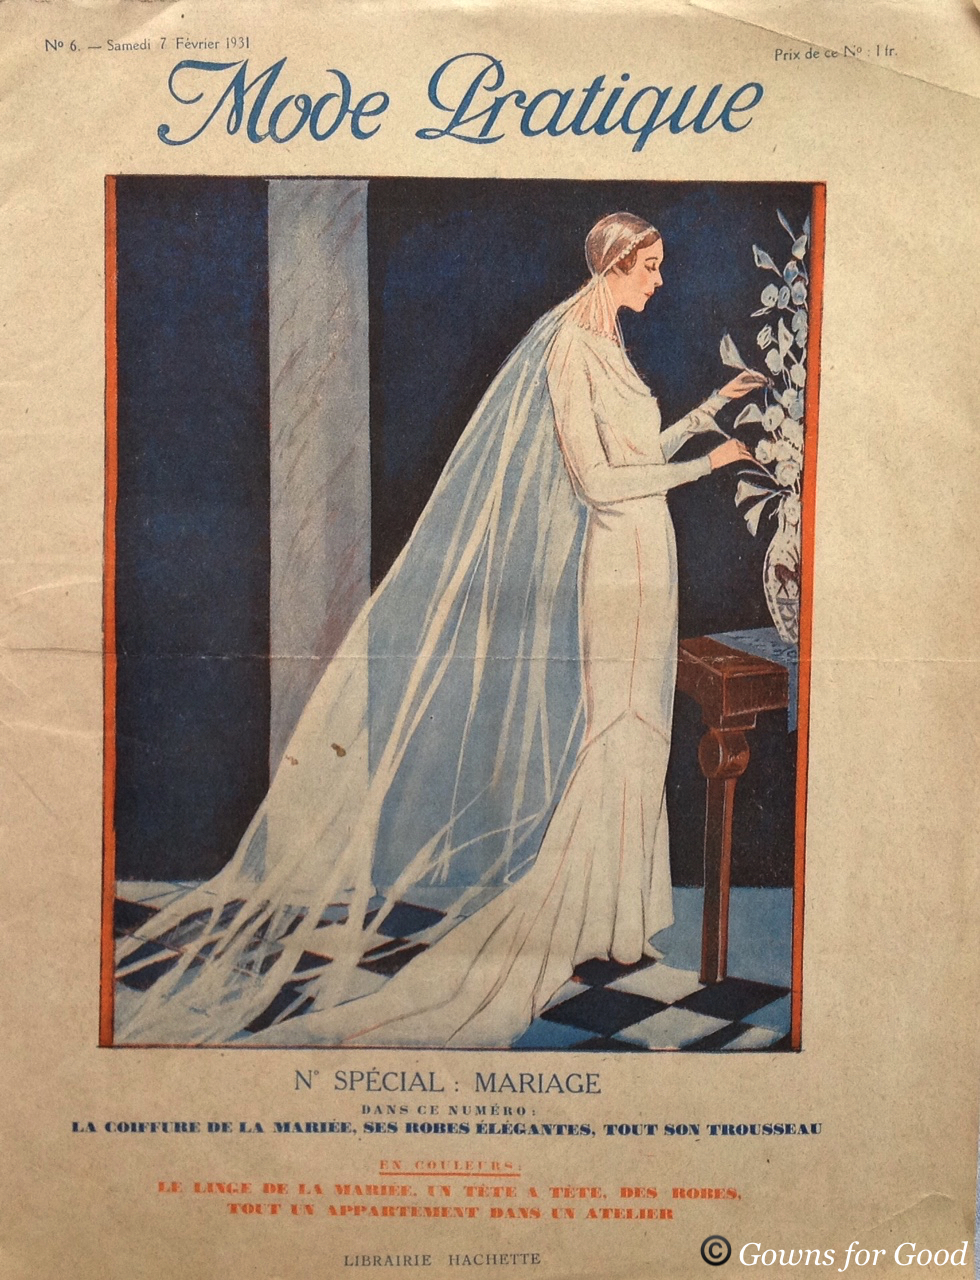 1931 Mode Pratique wedding dress